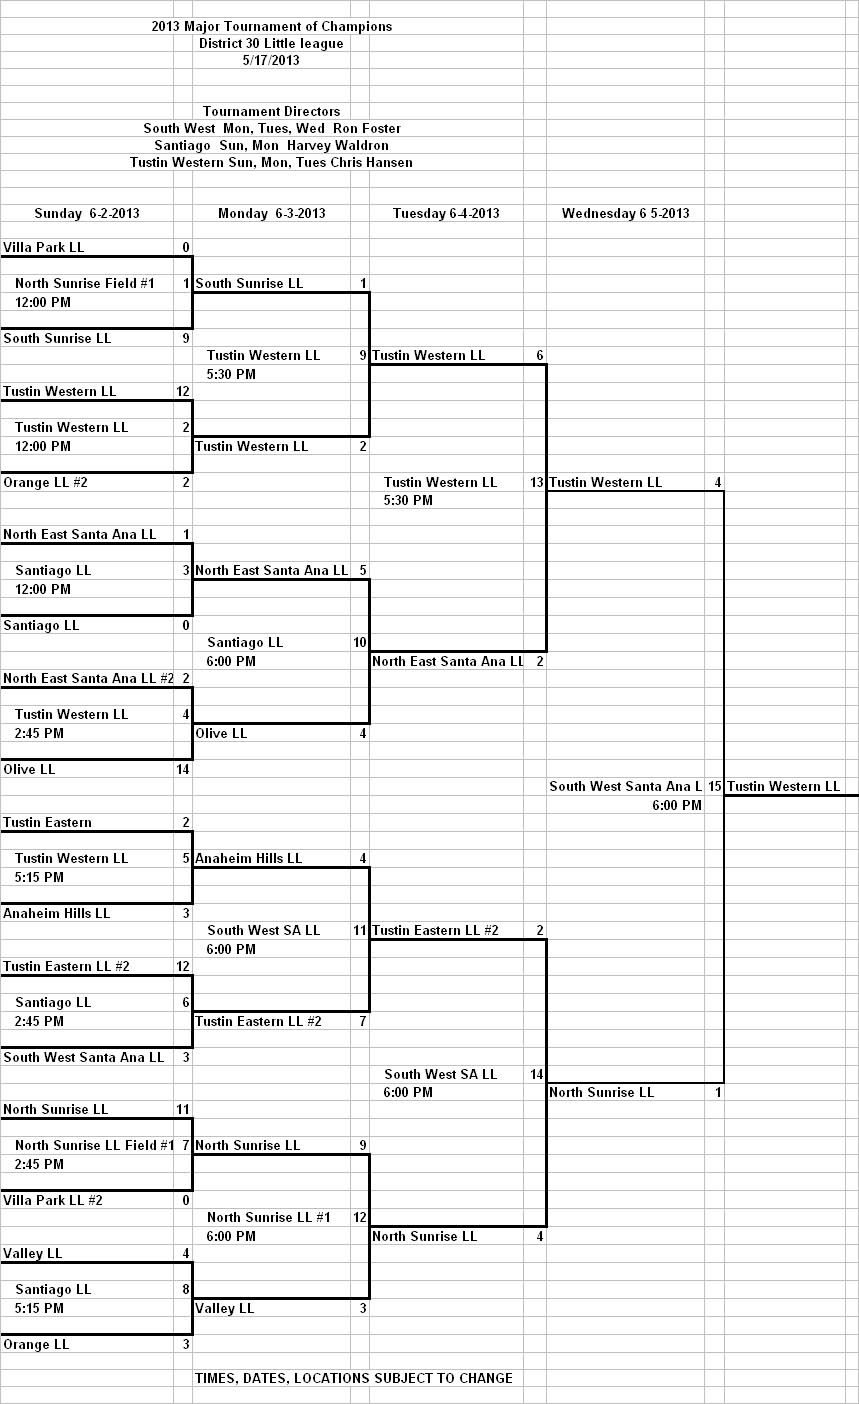 2013 Major Div District 30 TOC